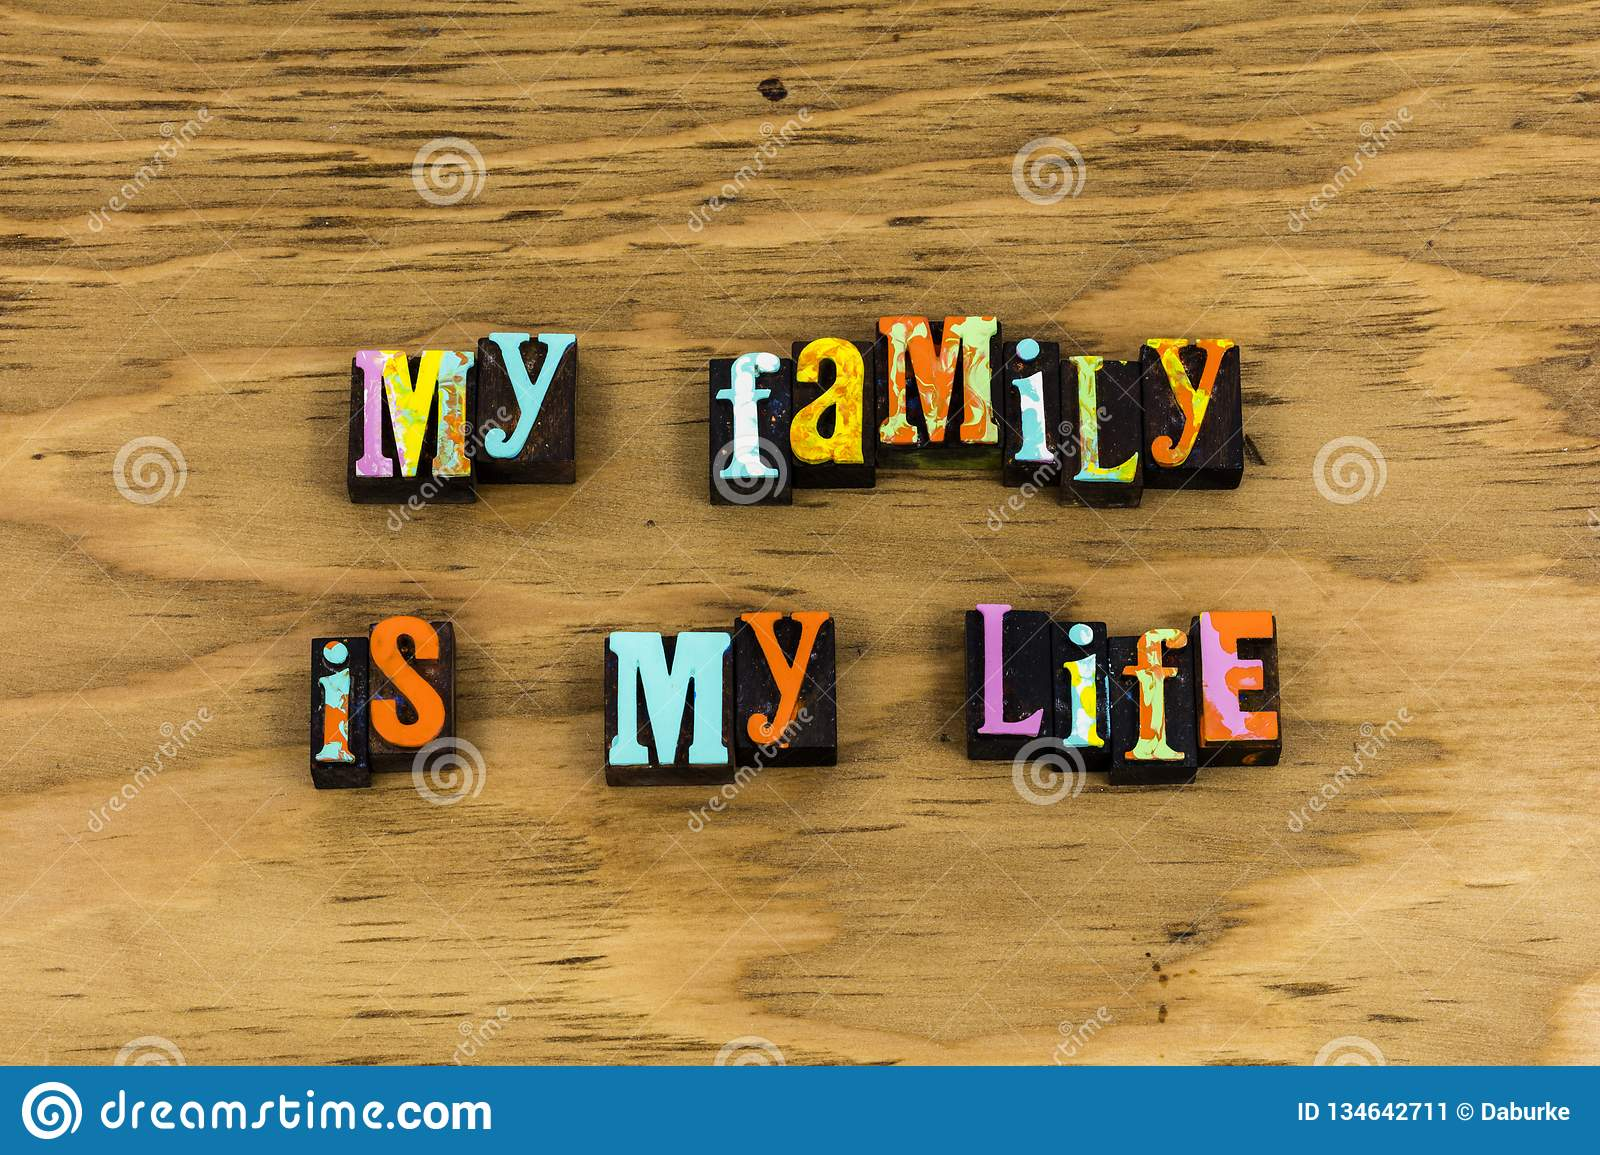 family life friends enjoy moment stock image image of quote